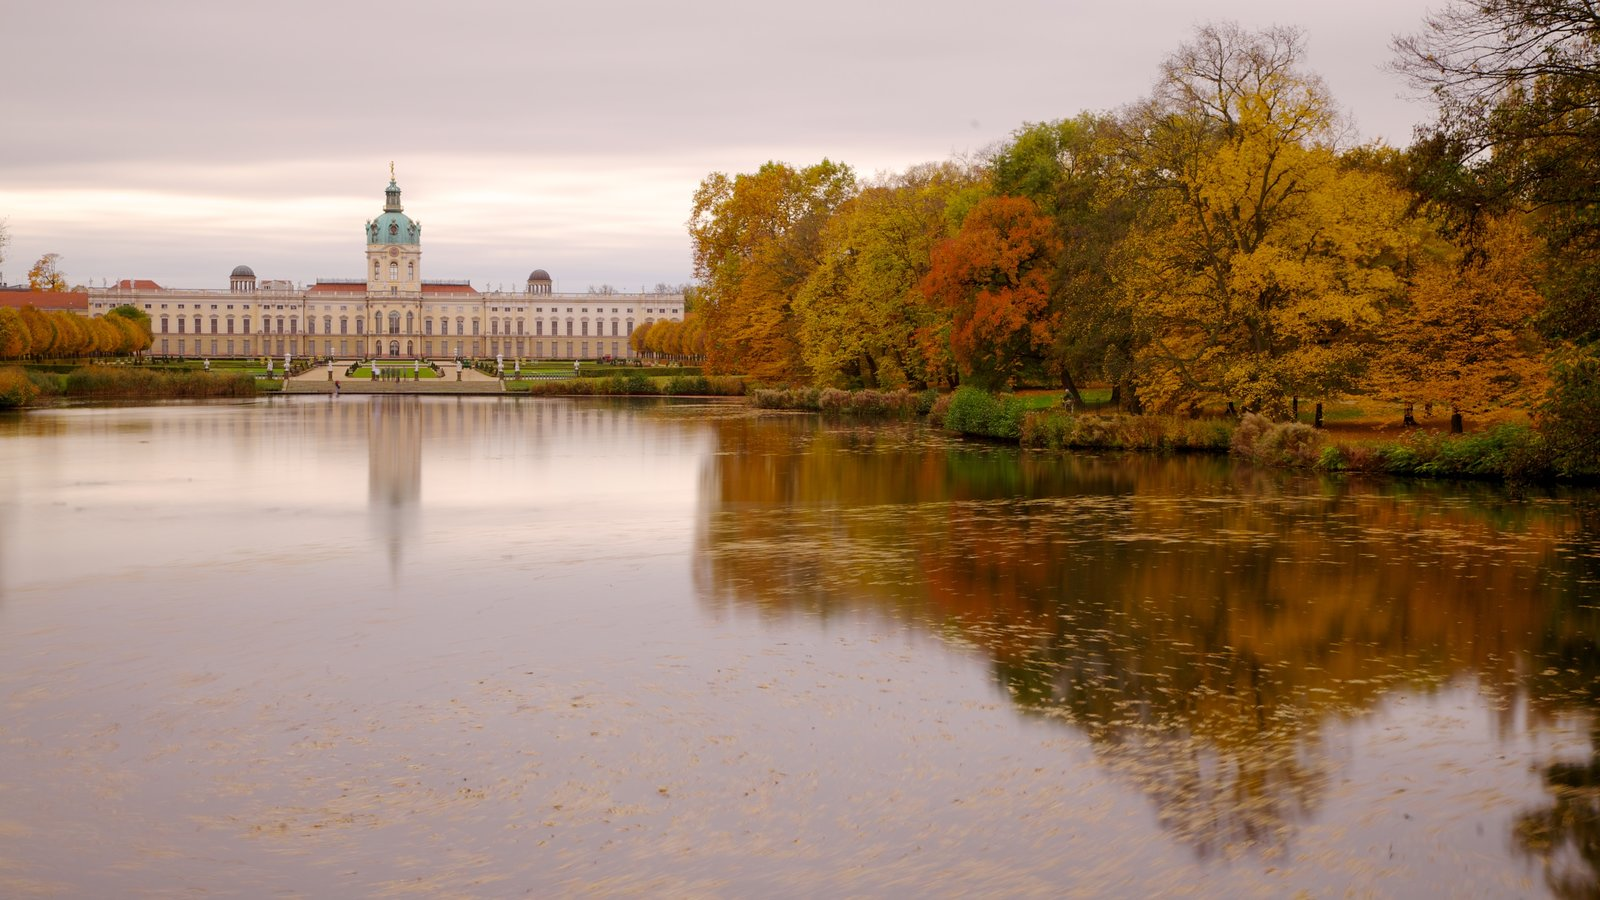 Schloss Charlottenburg featuring a sunset, a lake or waterhole and landscape views